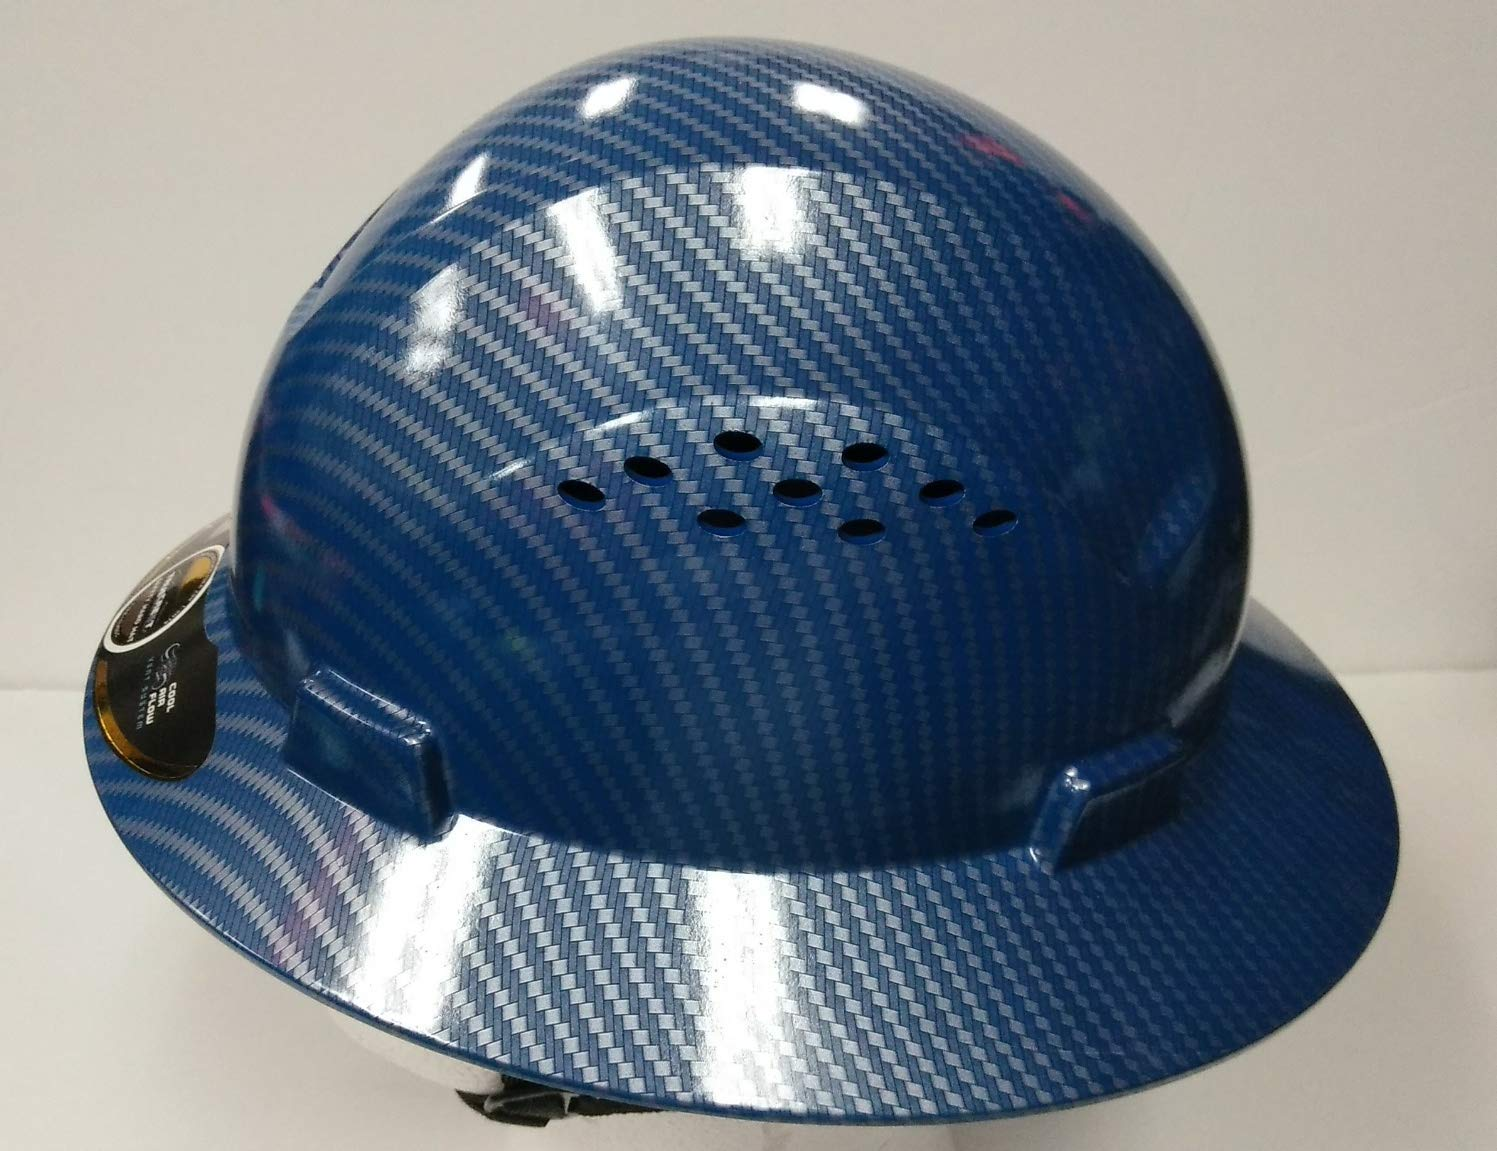 HNTE-Blue/Black Fiberglass Hard Hat Safety Full Brim Helmet, Nylon Ratchet Suspension, 4-Point, {Top Impact} Safety Hard Hat Cool Air Flow Vent System by true-Safety Helmet